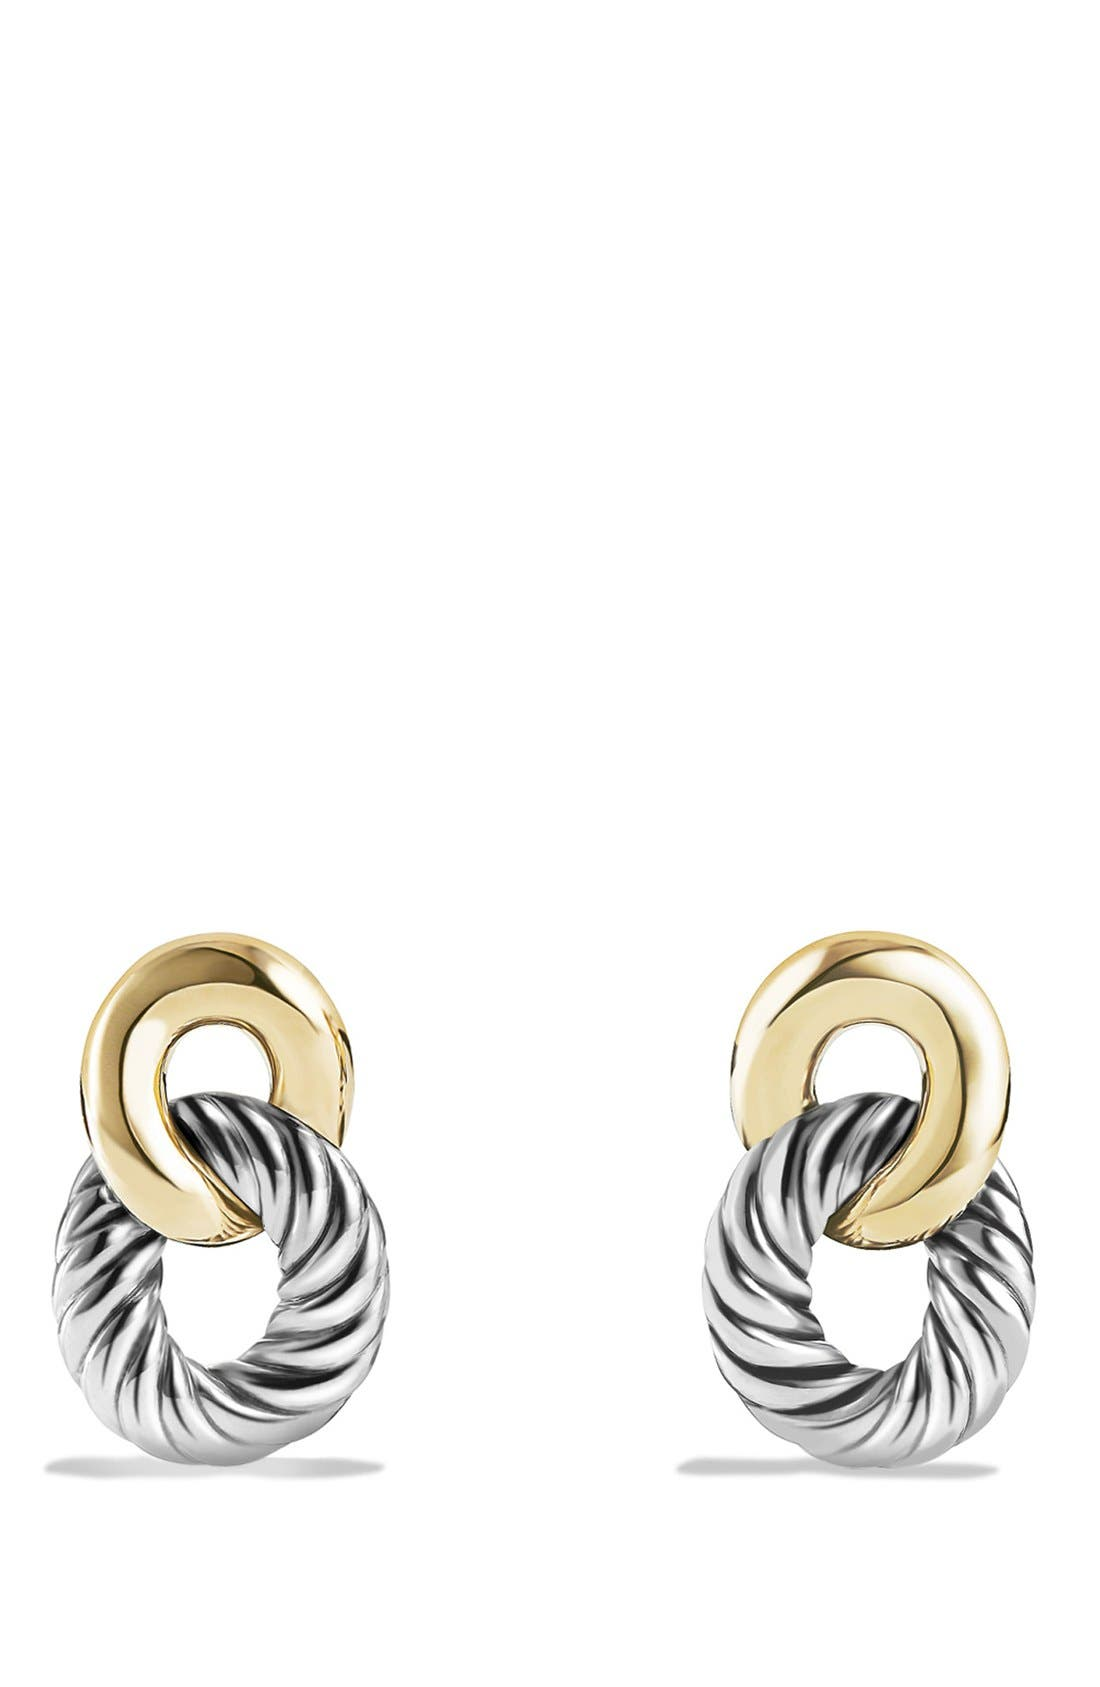 DAVID YURMAN 'Belmont' Curb Link Drop Earrings with